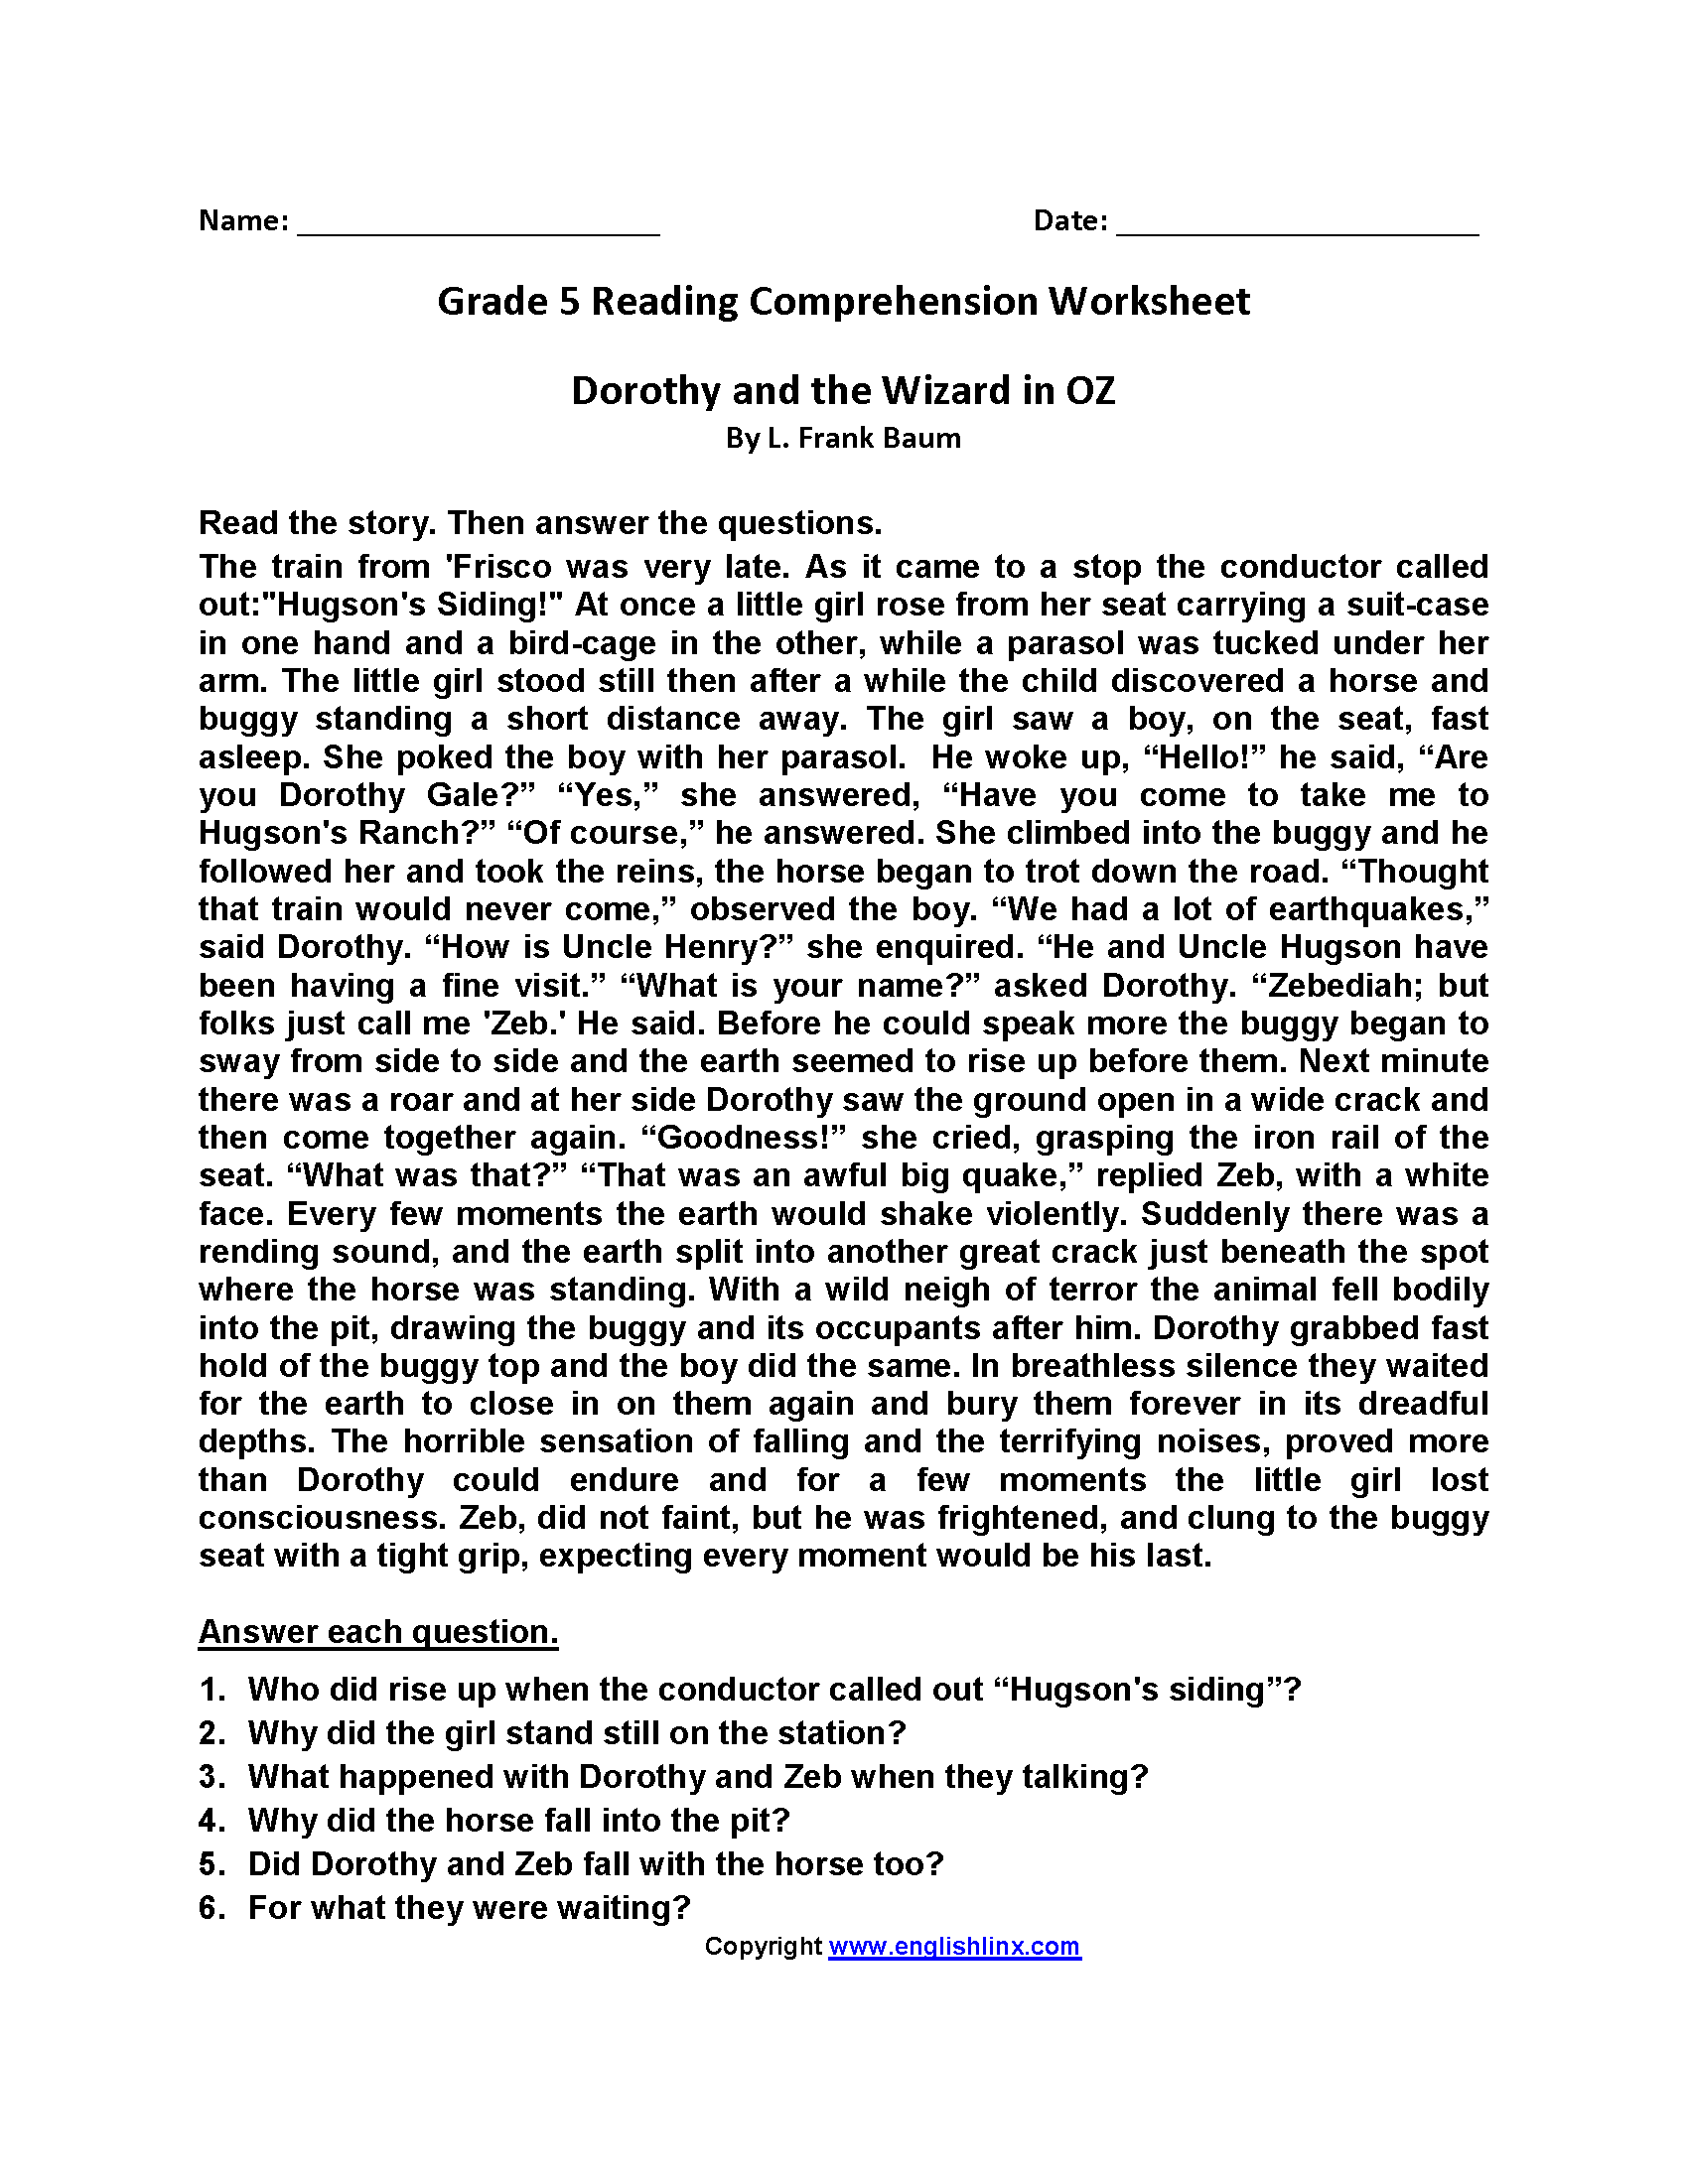 Dorothy Wizard Of Oz Fifth Grade Reading Worksheets